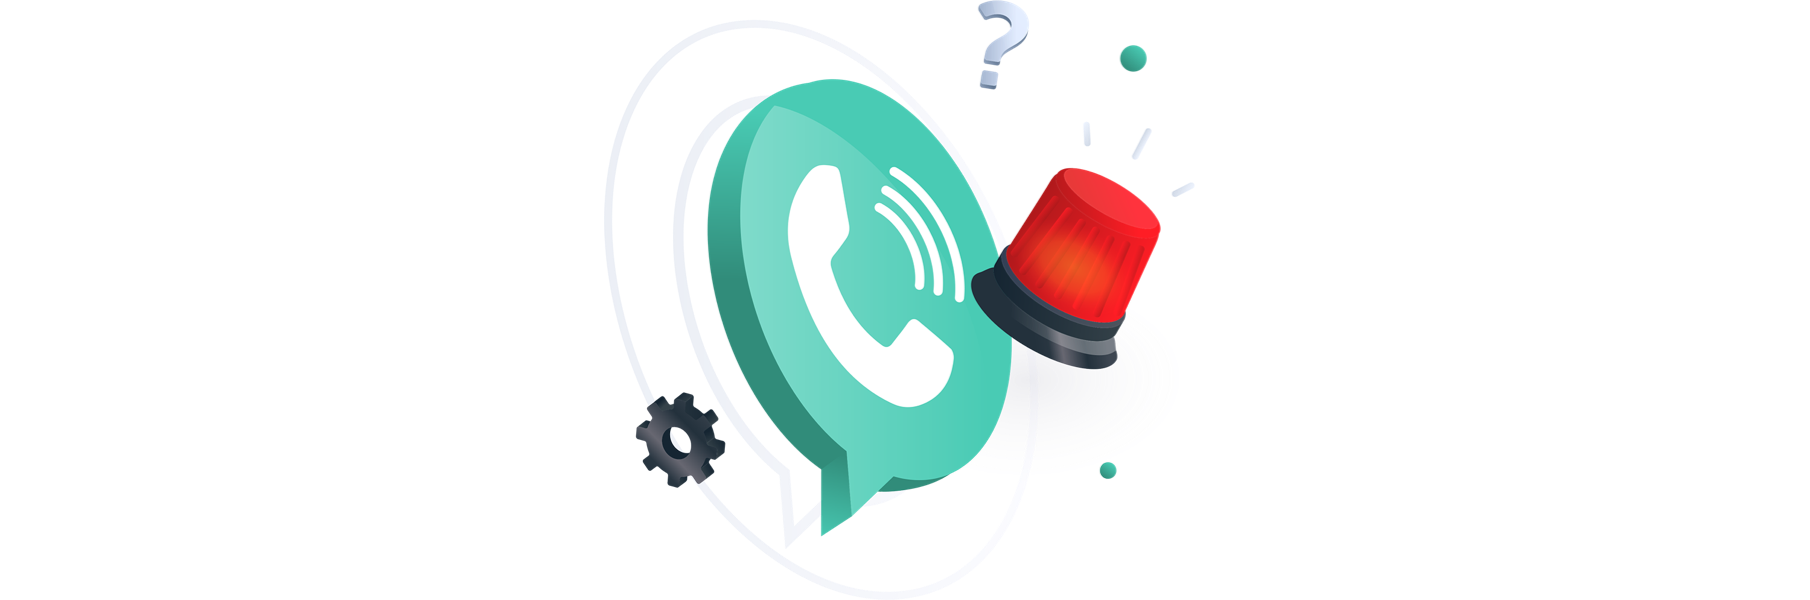 messaging service call